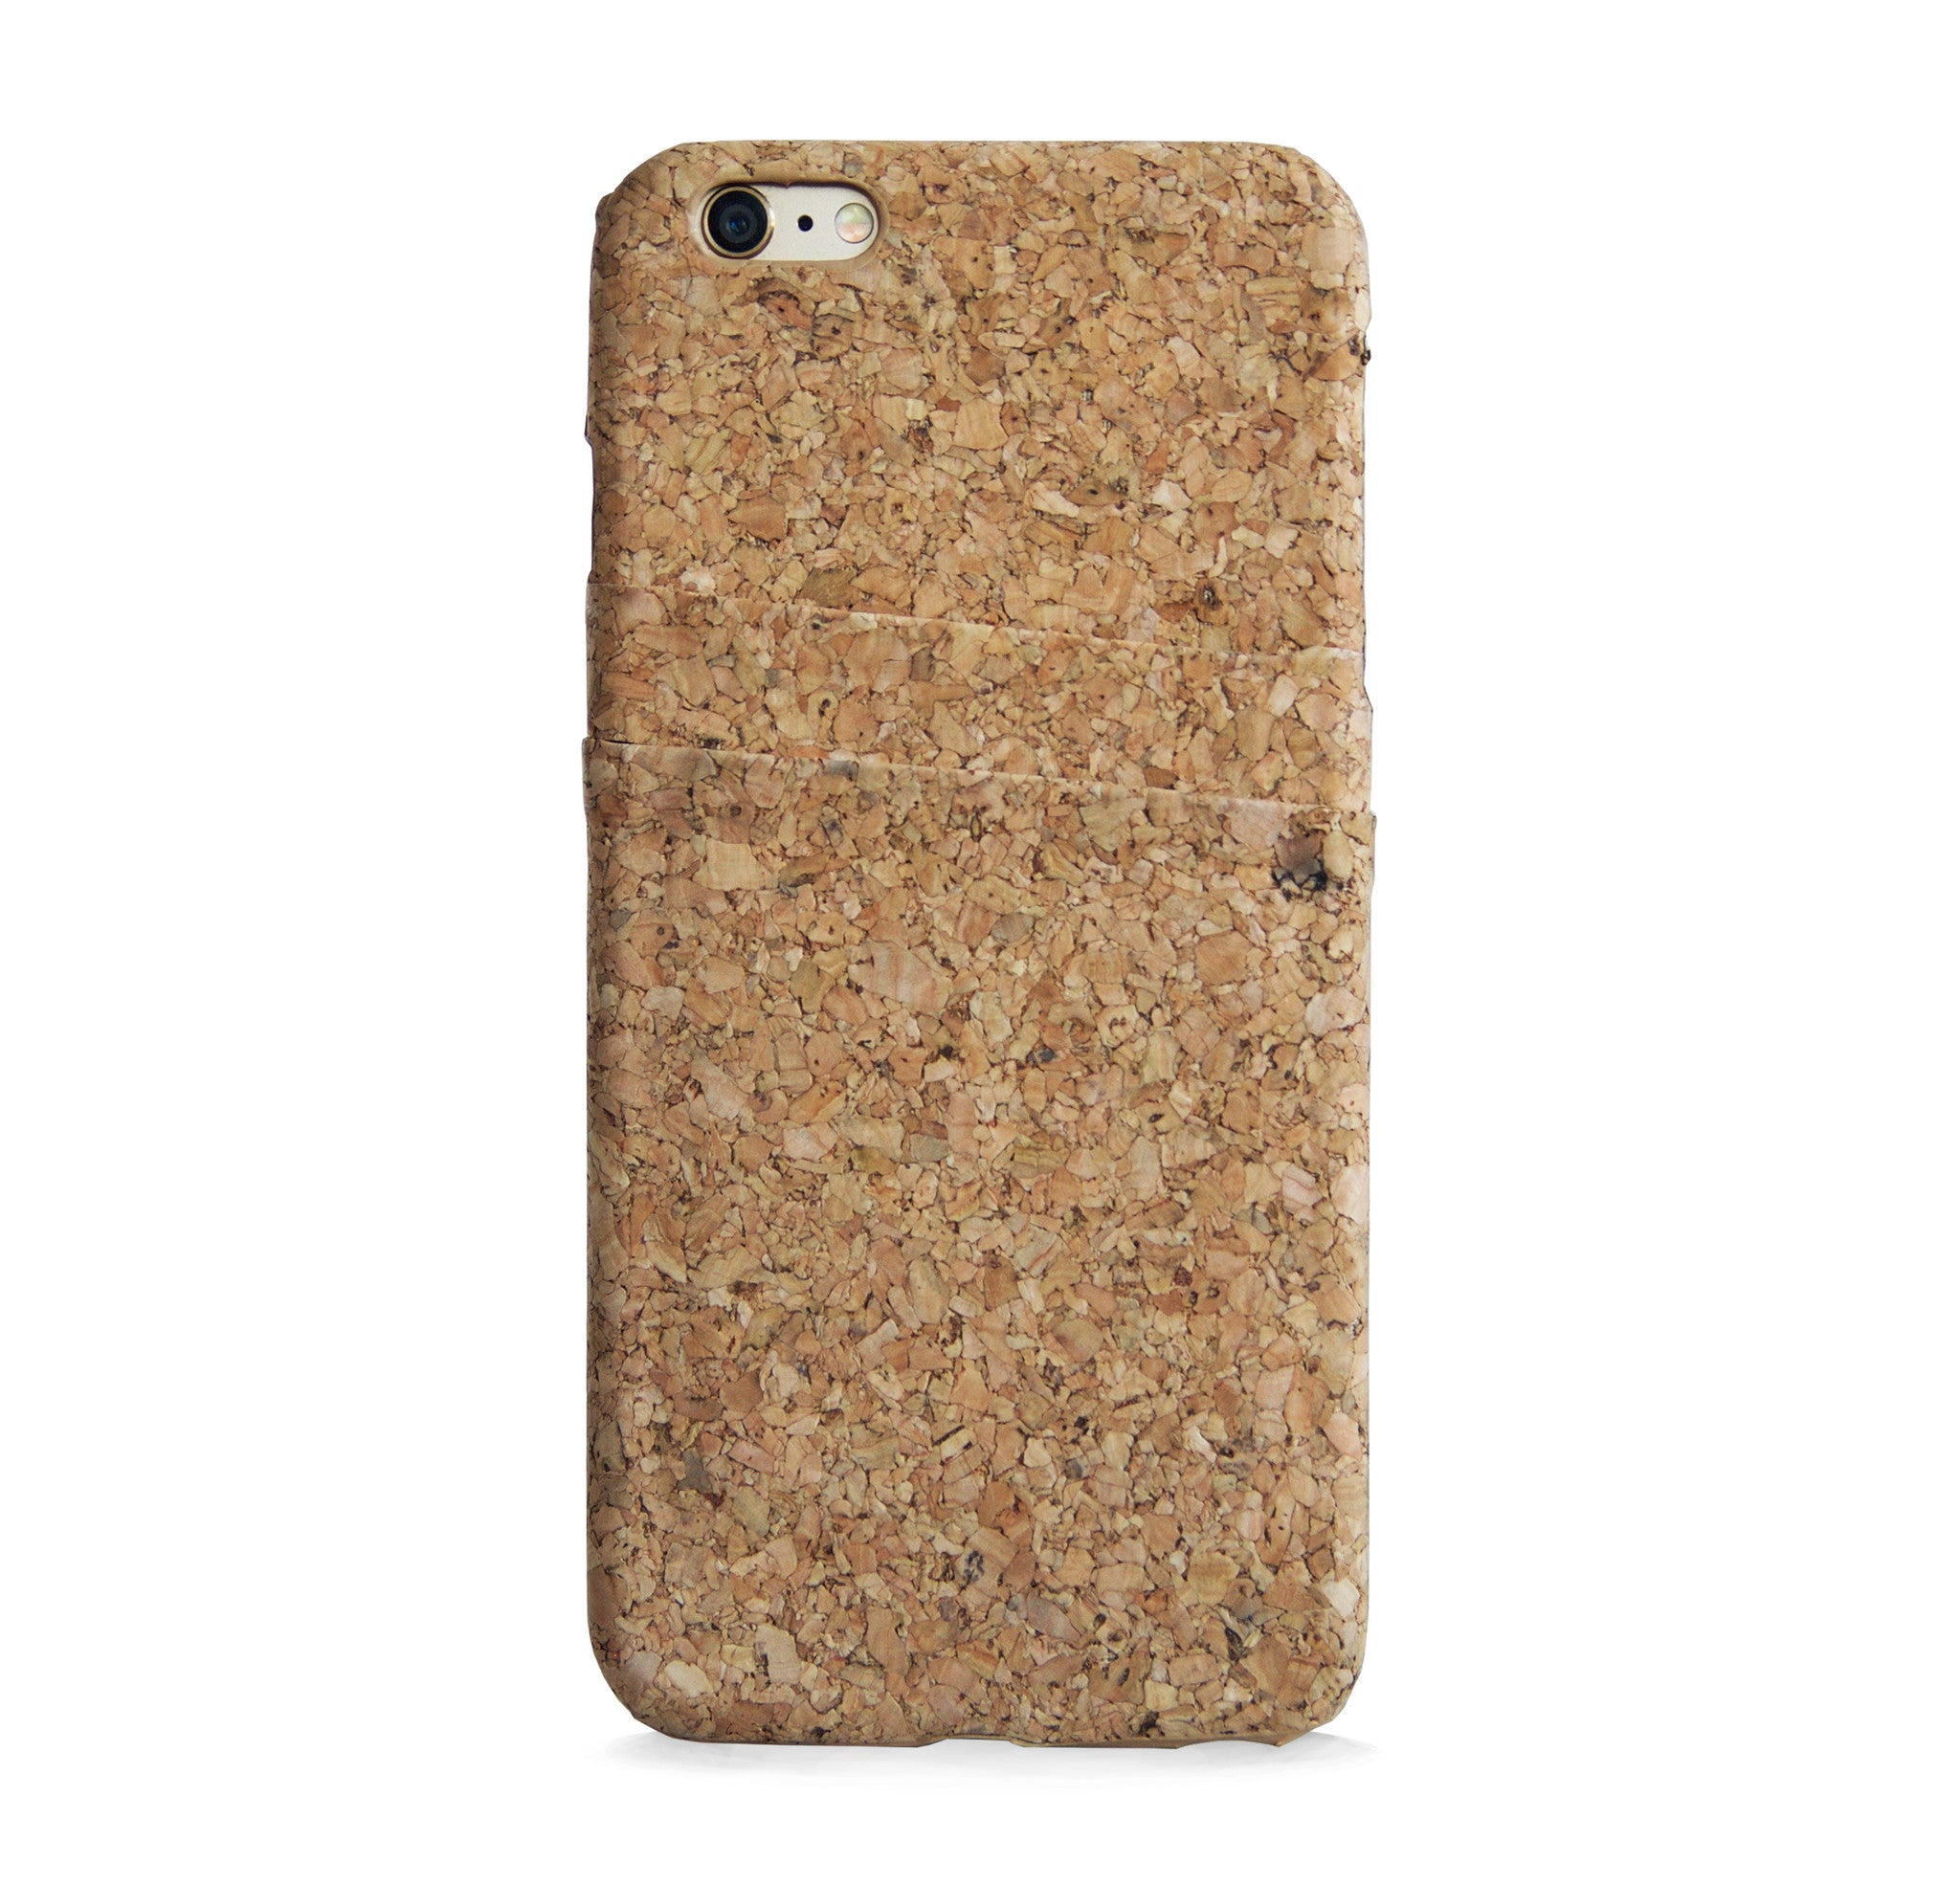 CORK ID-WALLET CARD HOLDER CASE FOR IPHONE 6/6s